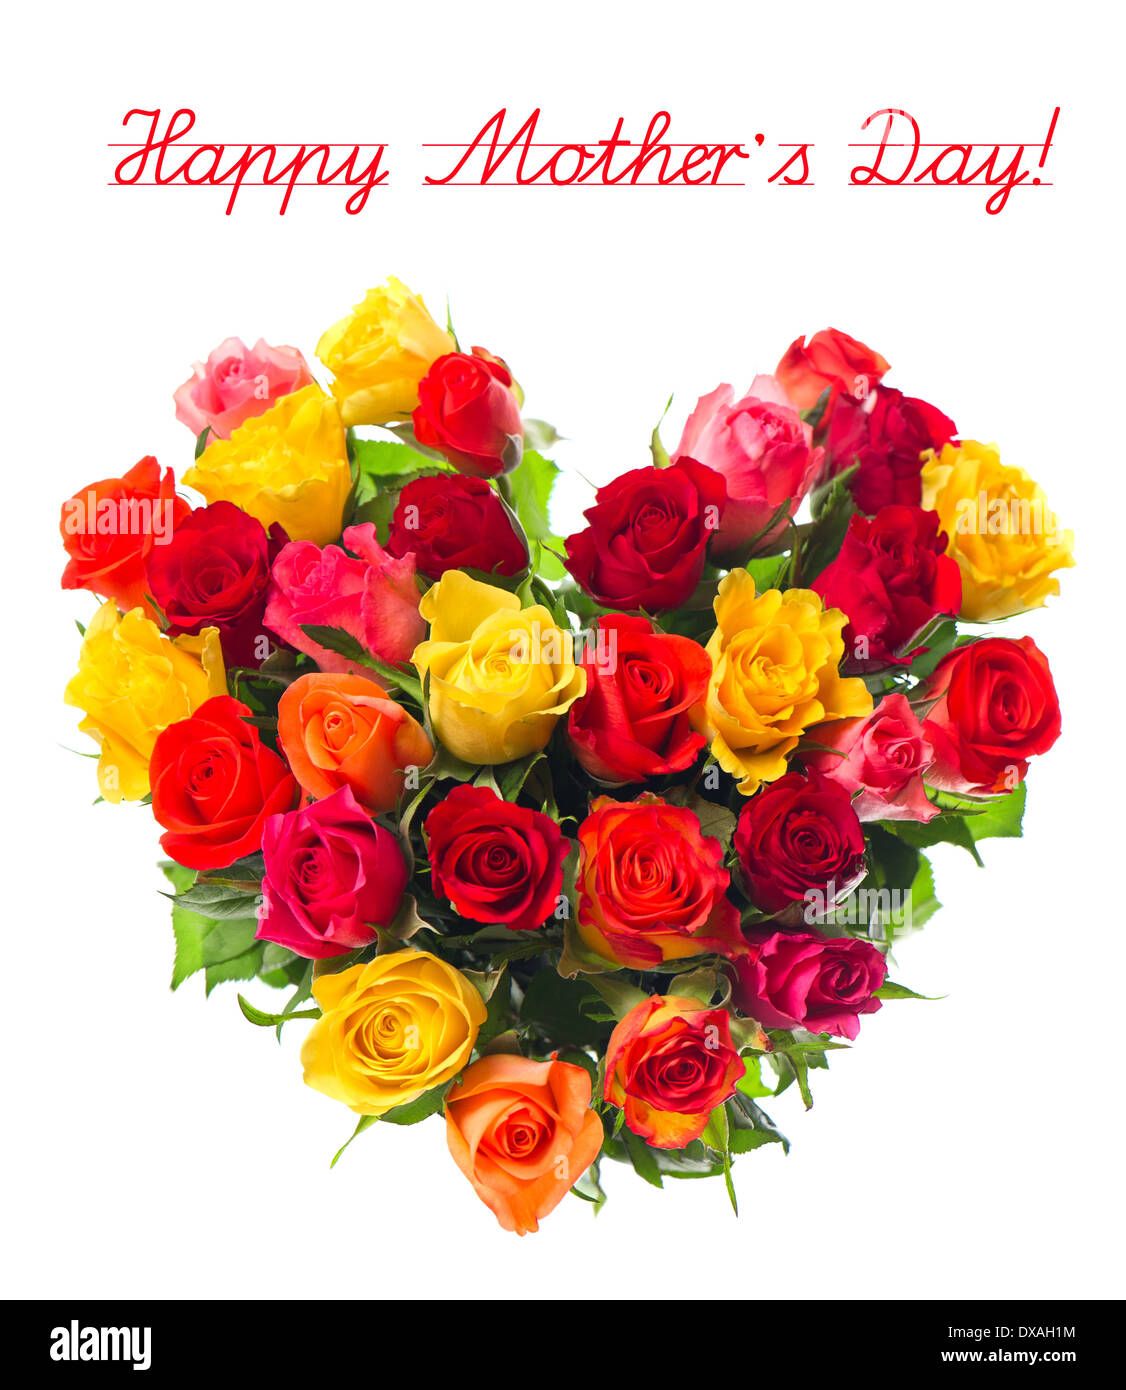 Happy Mothers Day Bouquet Of Colorful Assorted Roses In Heart